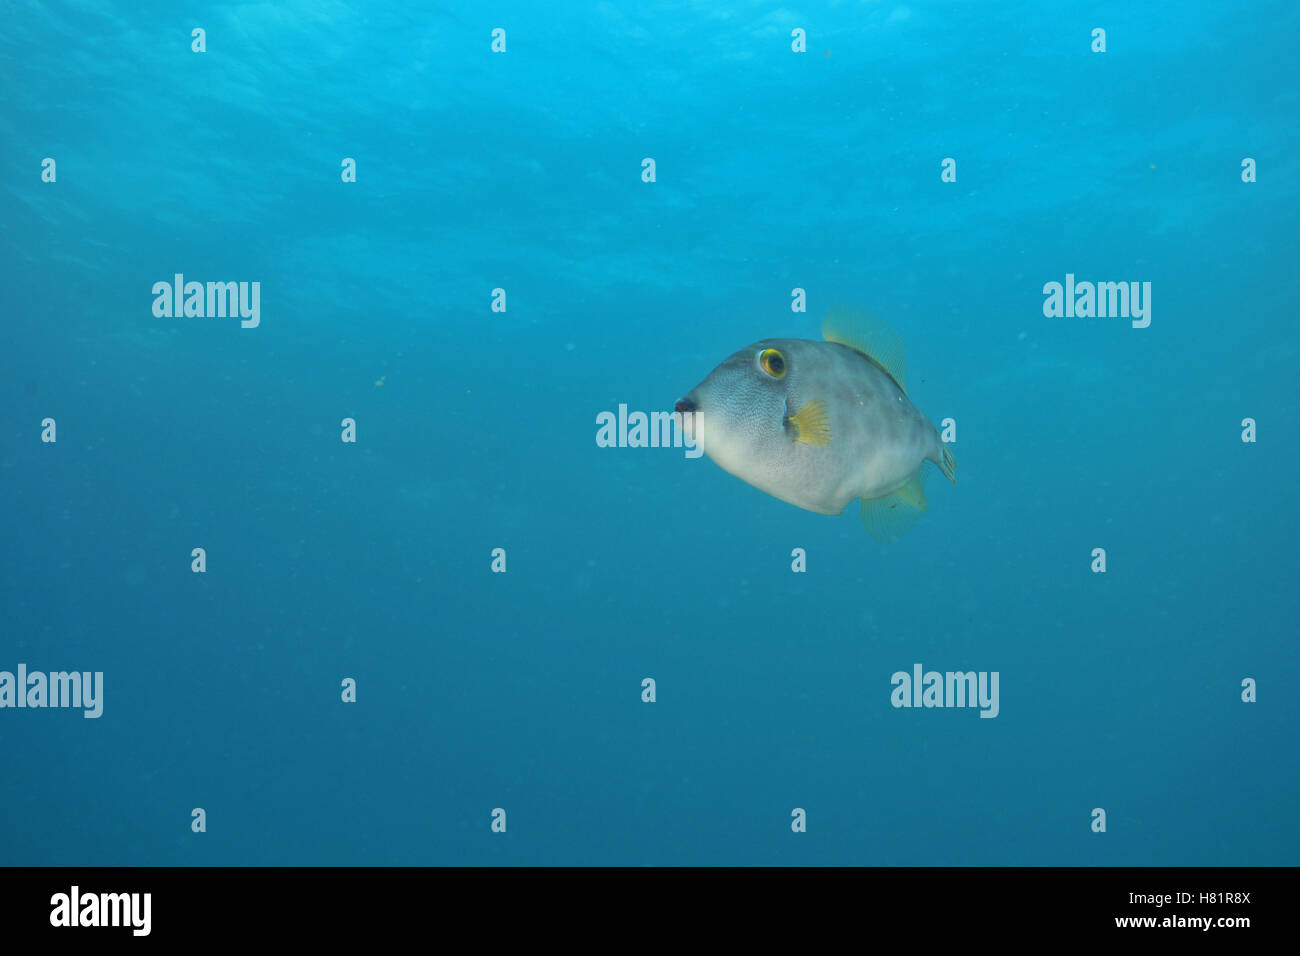 Leatherjacket hovering in blue water - Stock Image